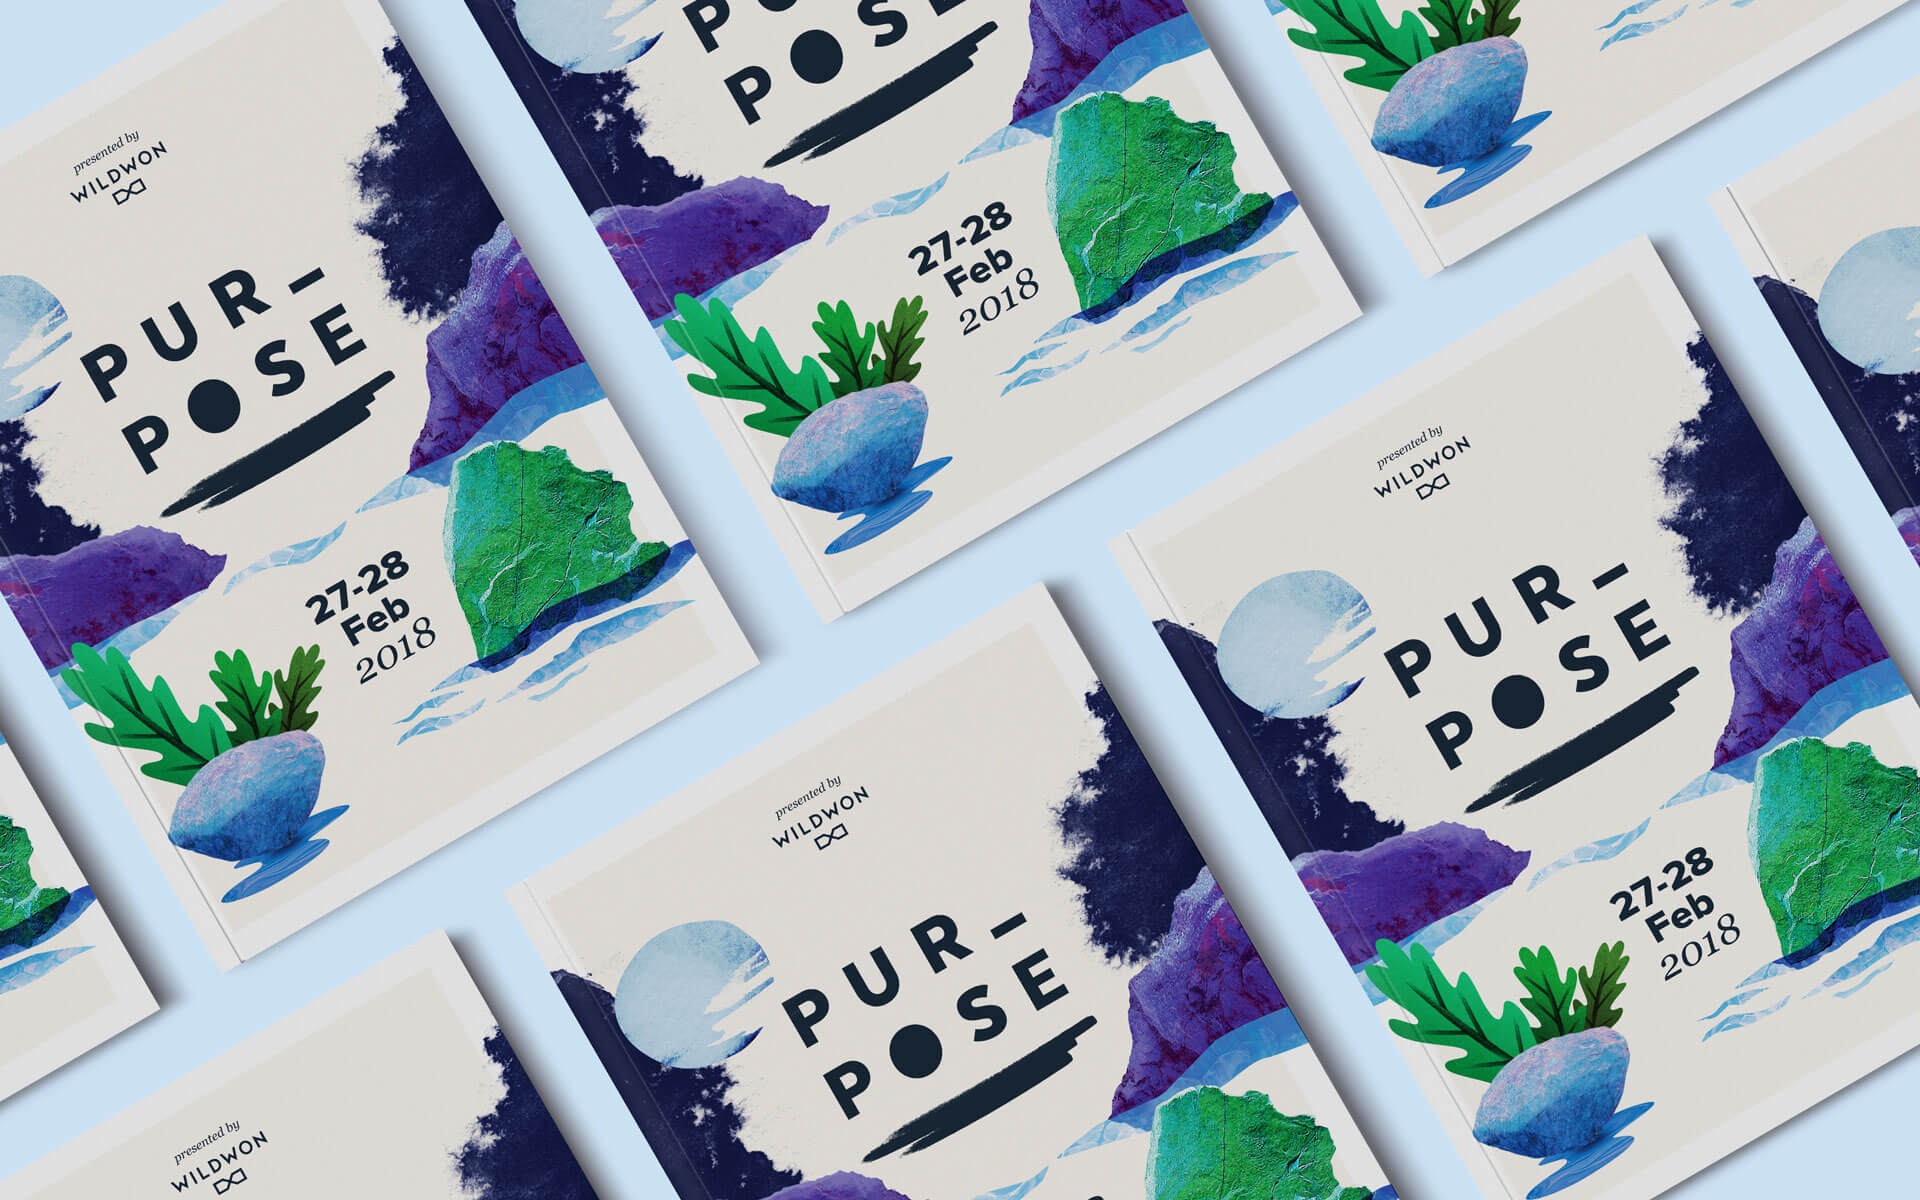 Purpose 2018 program covers